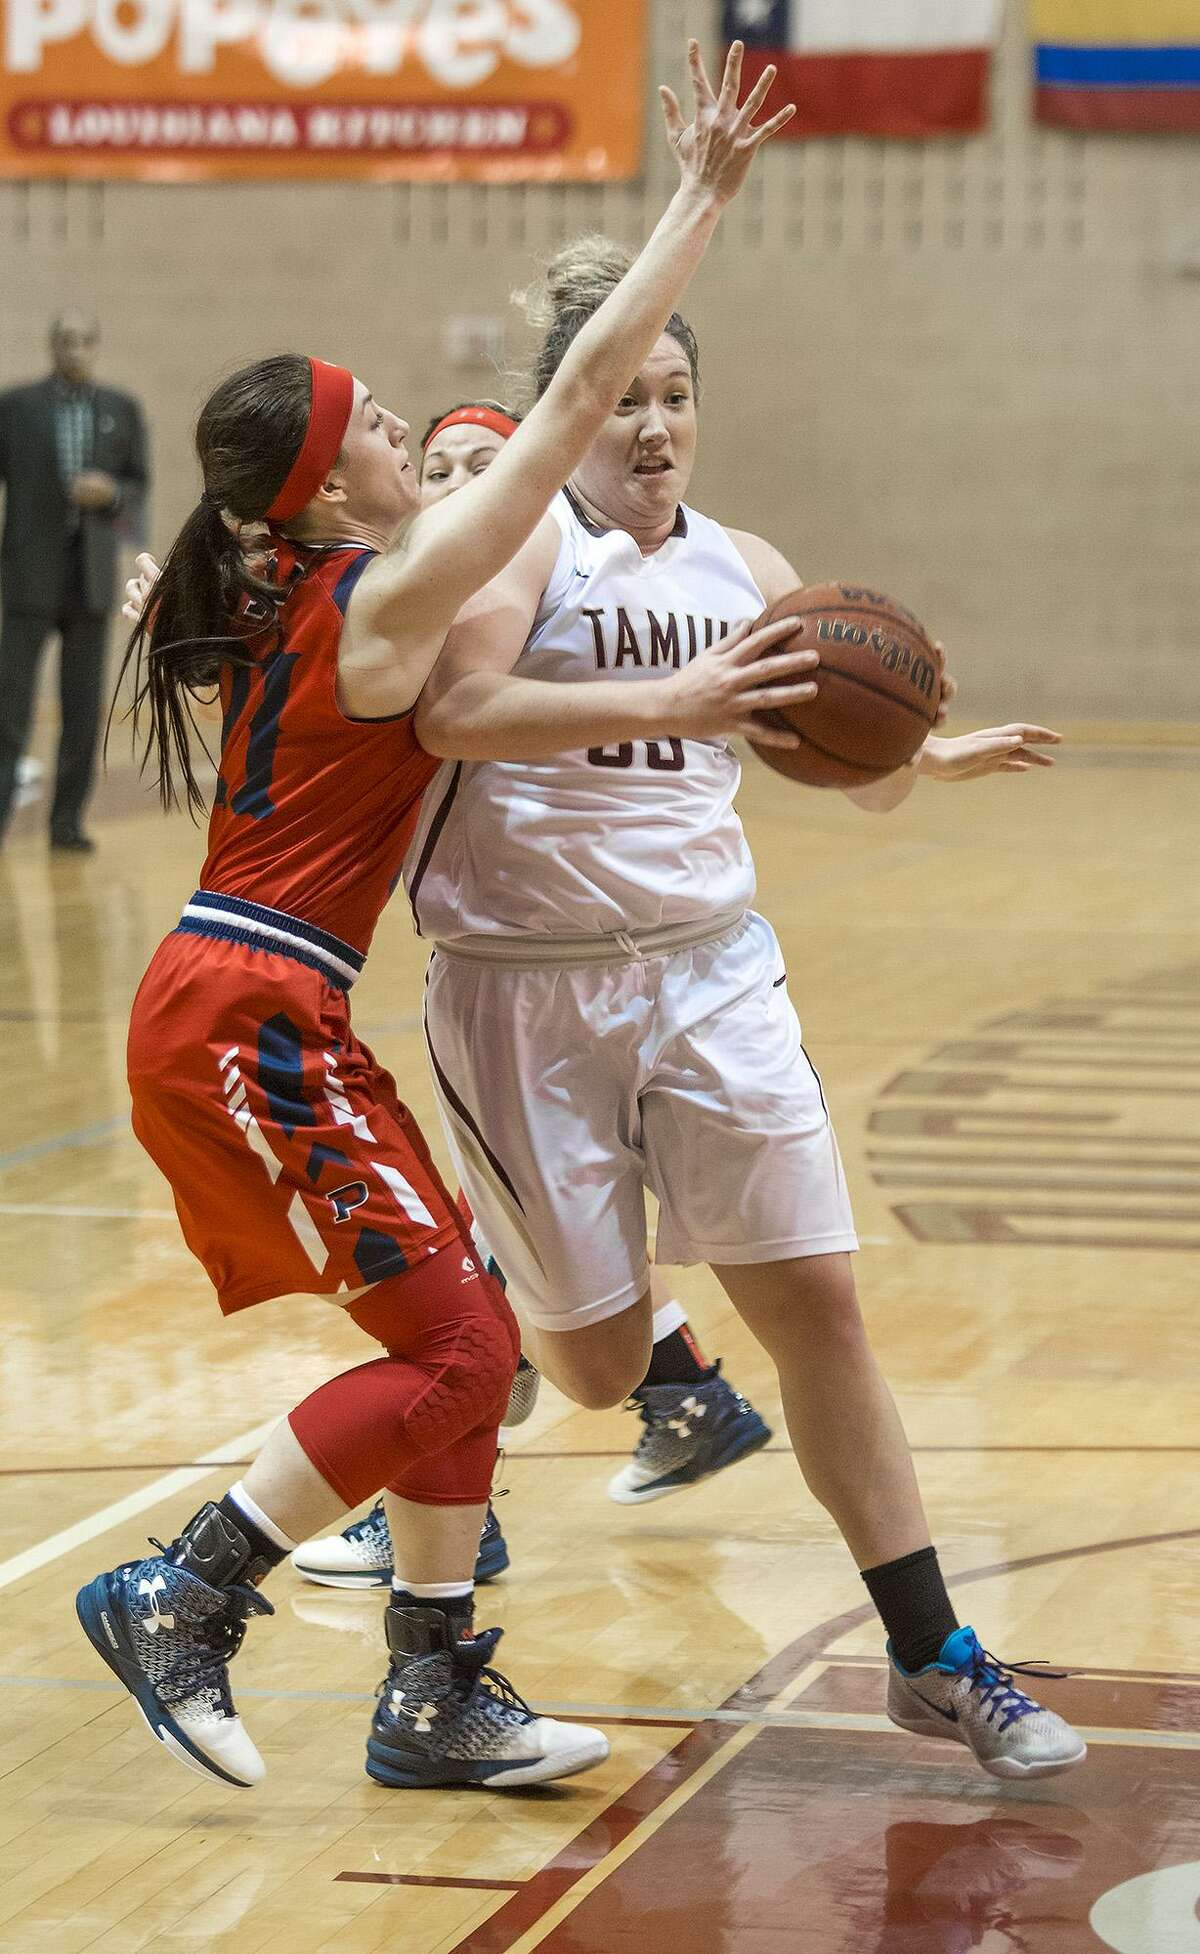 Hannah Beede had her fifth double-double of the season Saturday with 20 points and 13 rebounds in TAMIU's 55-52 win over Oklahoma Panhandle State.